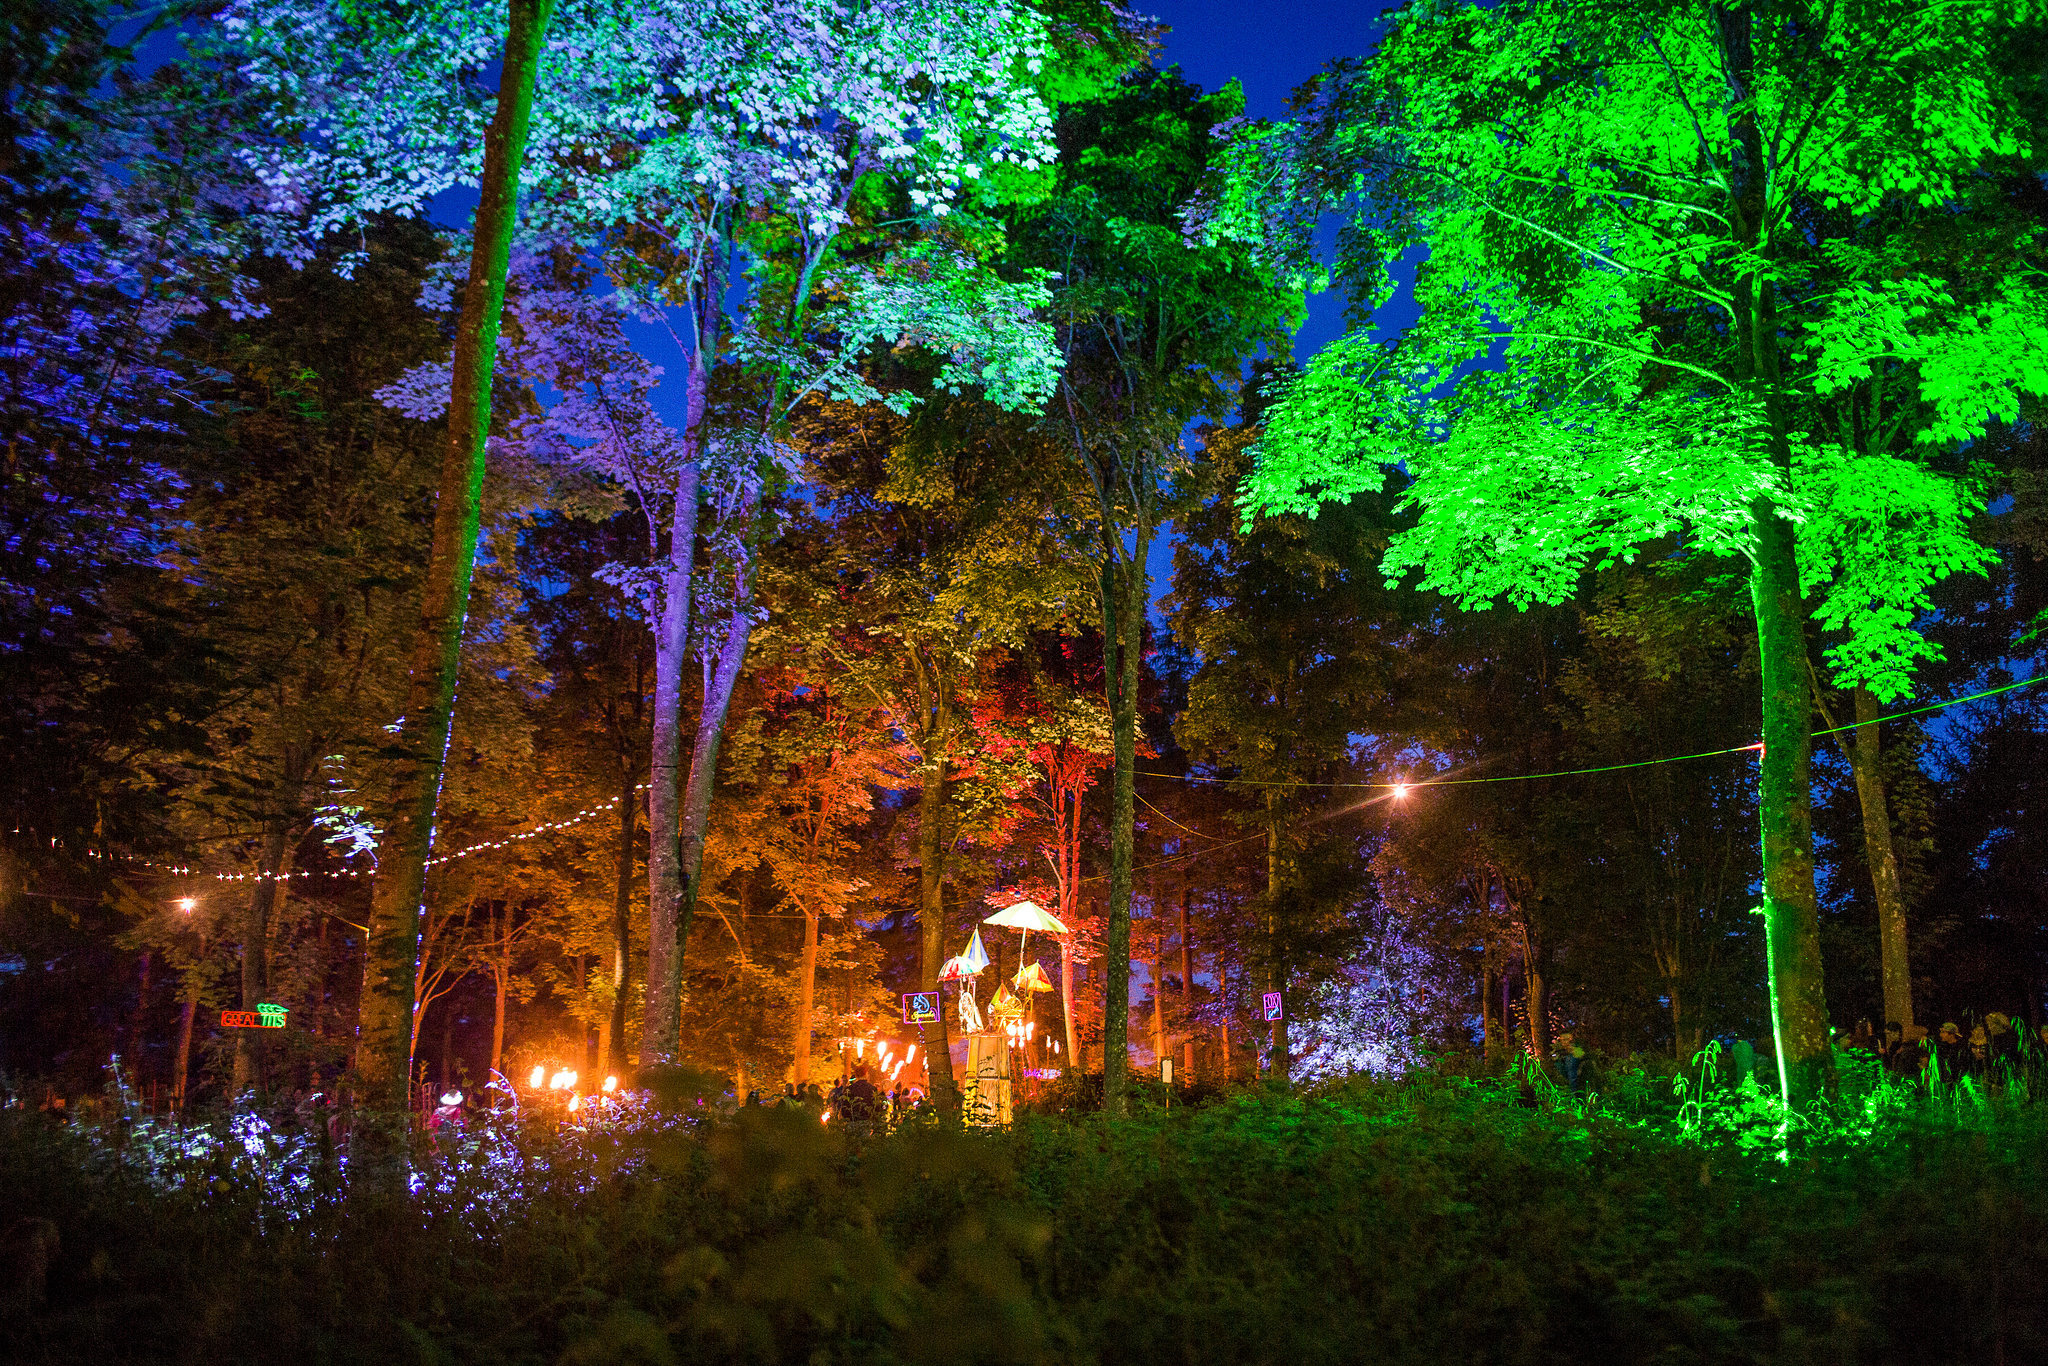 The woods at night at Kendal Calling. Credit: Tom Martin